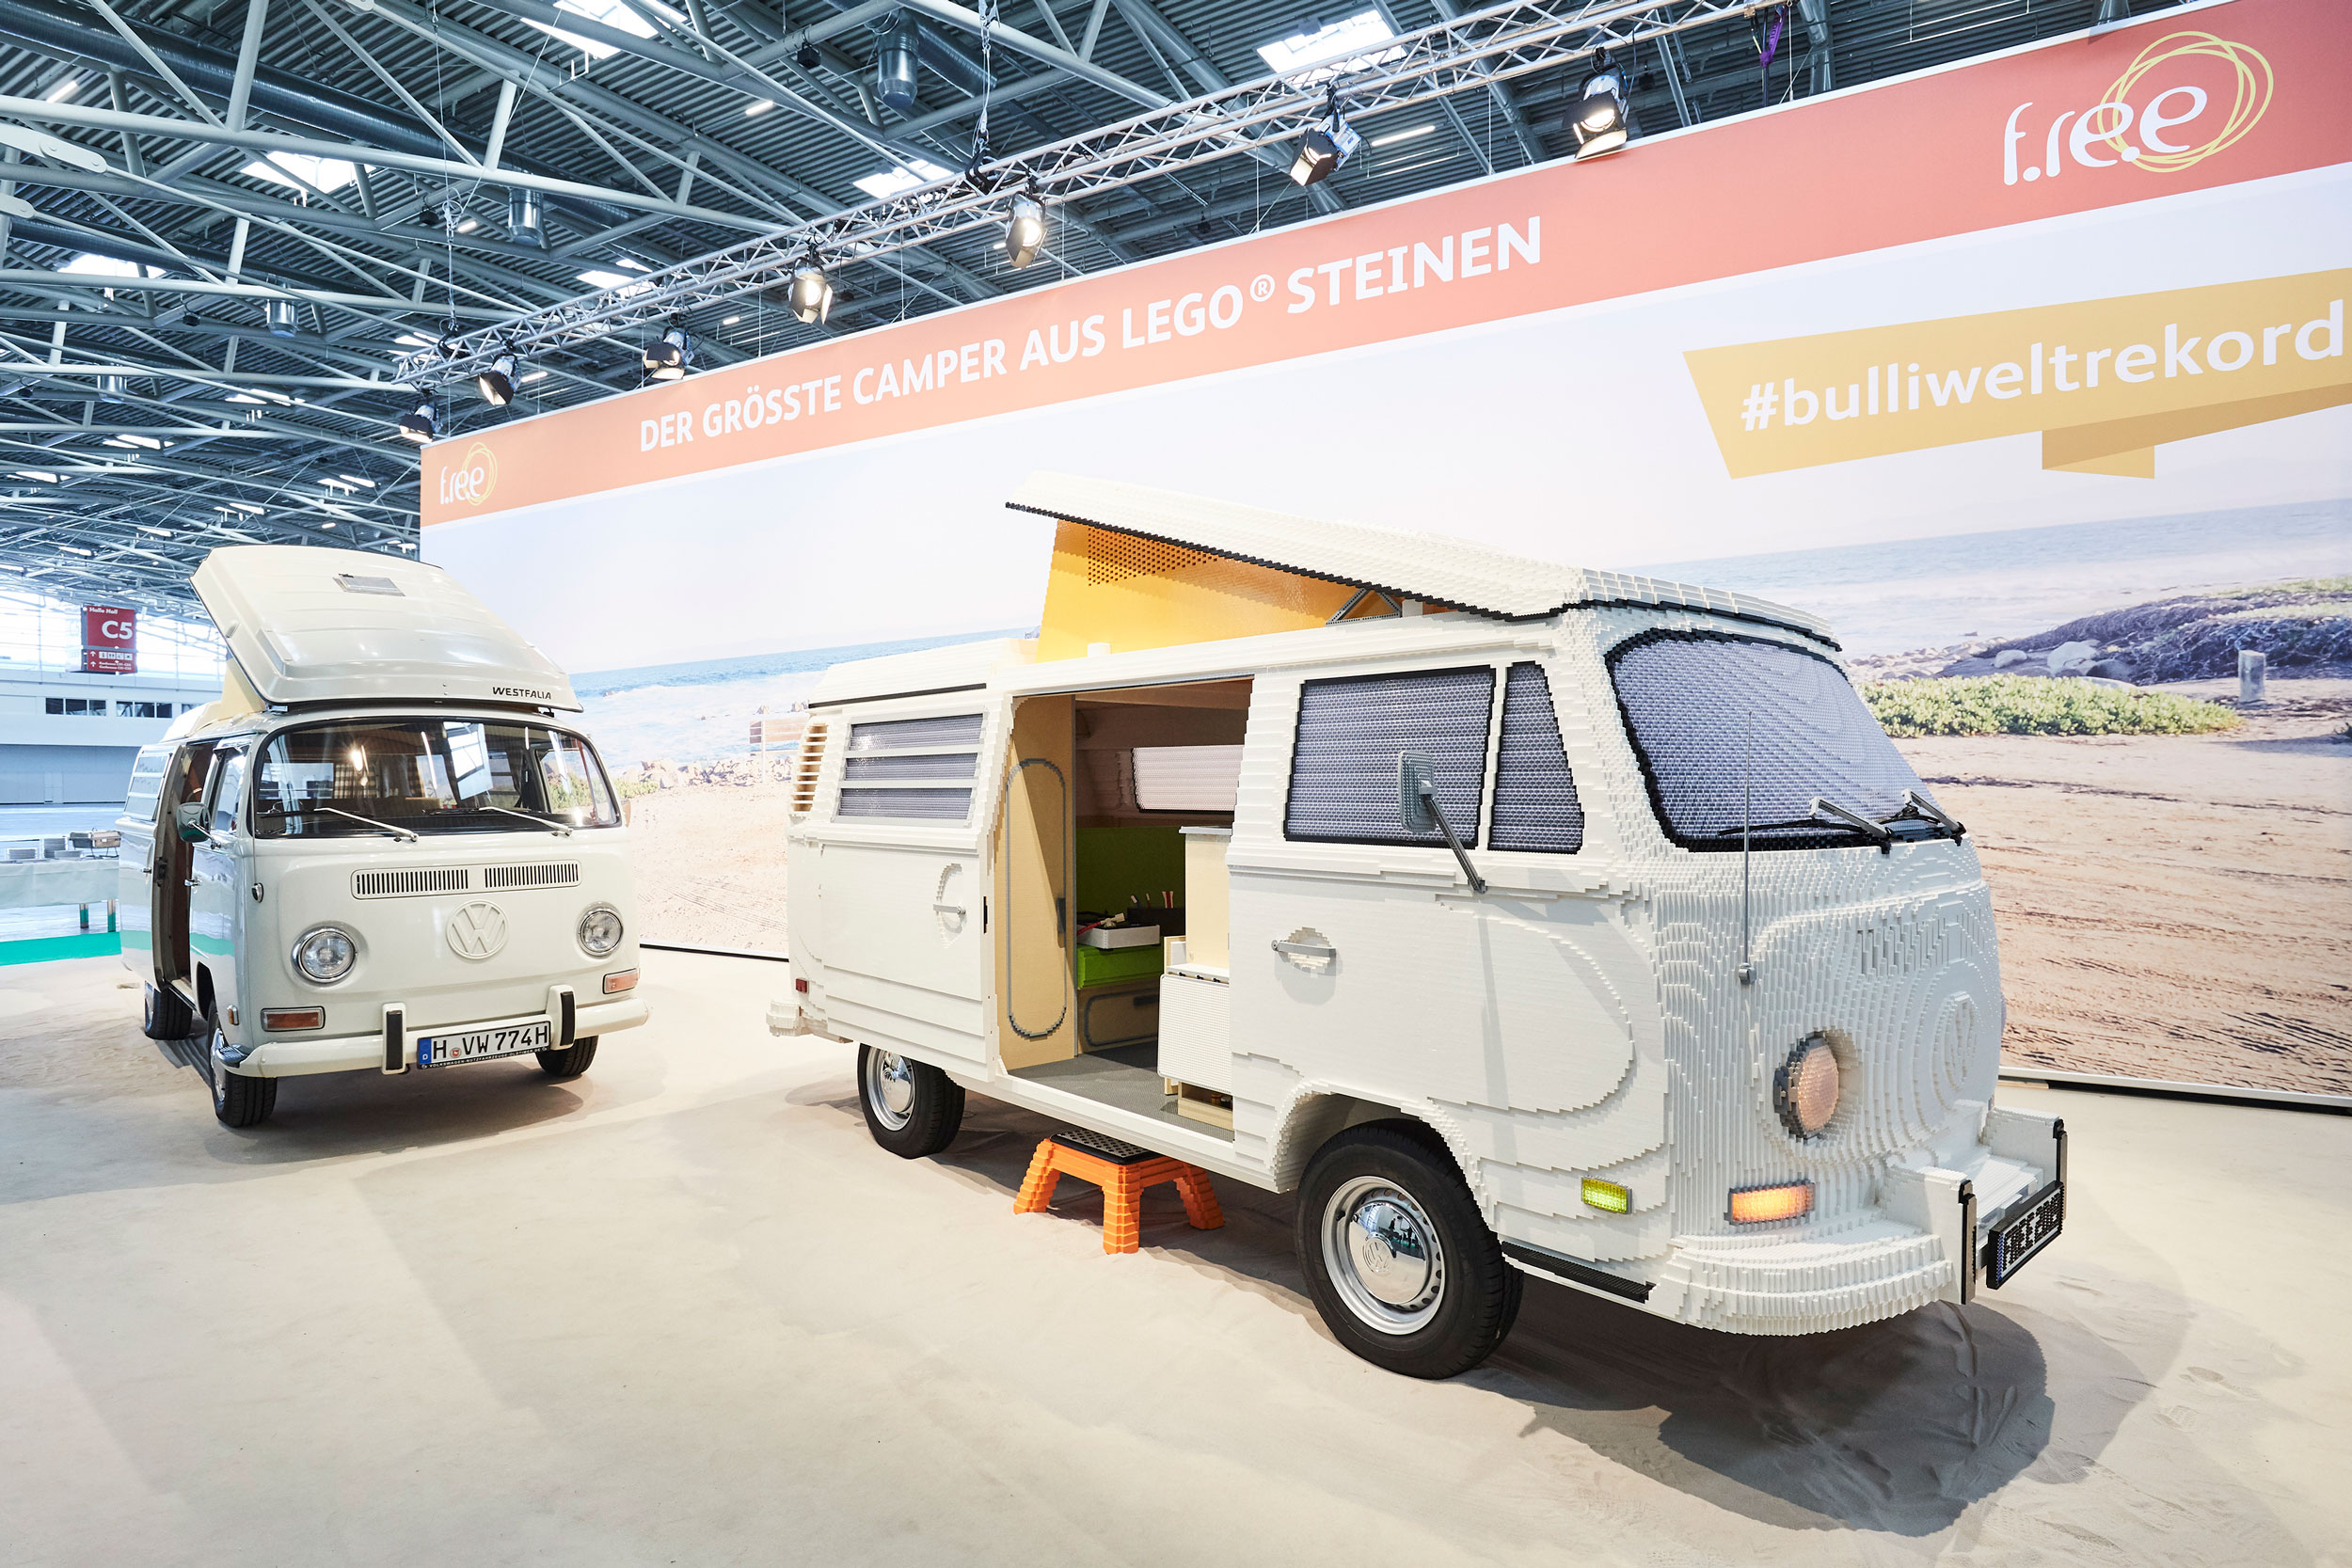 This full-size LEGO VW T2 campervan looks like the real deal